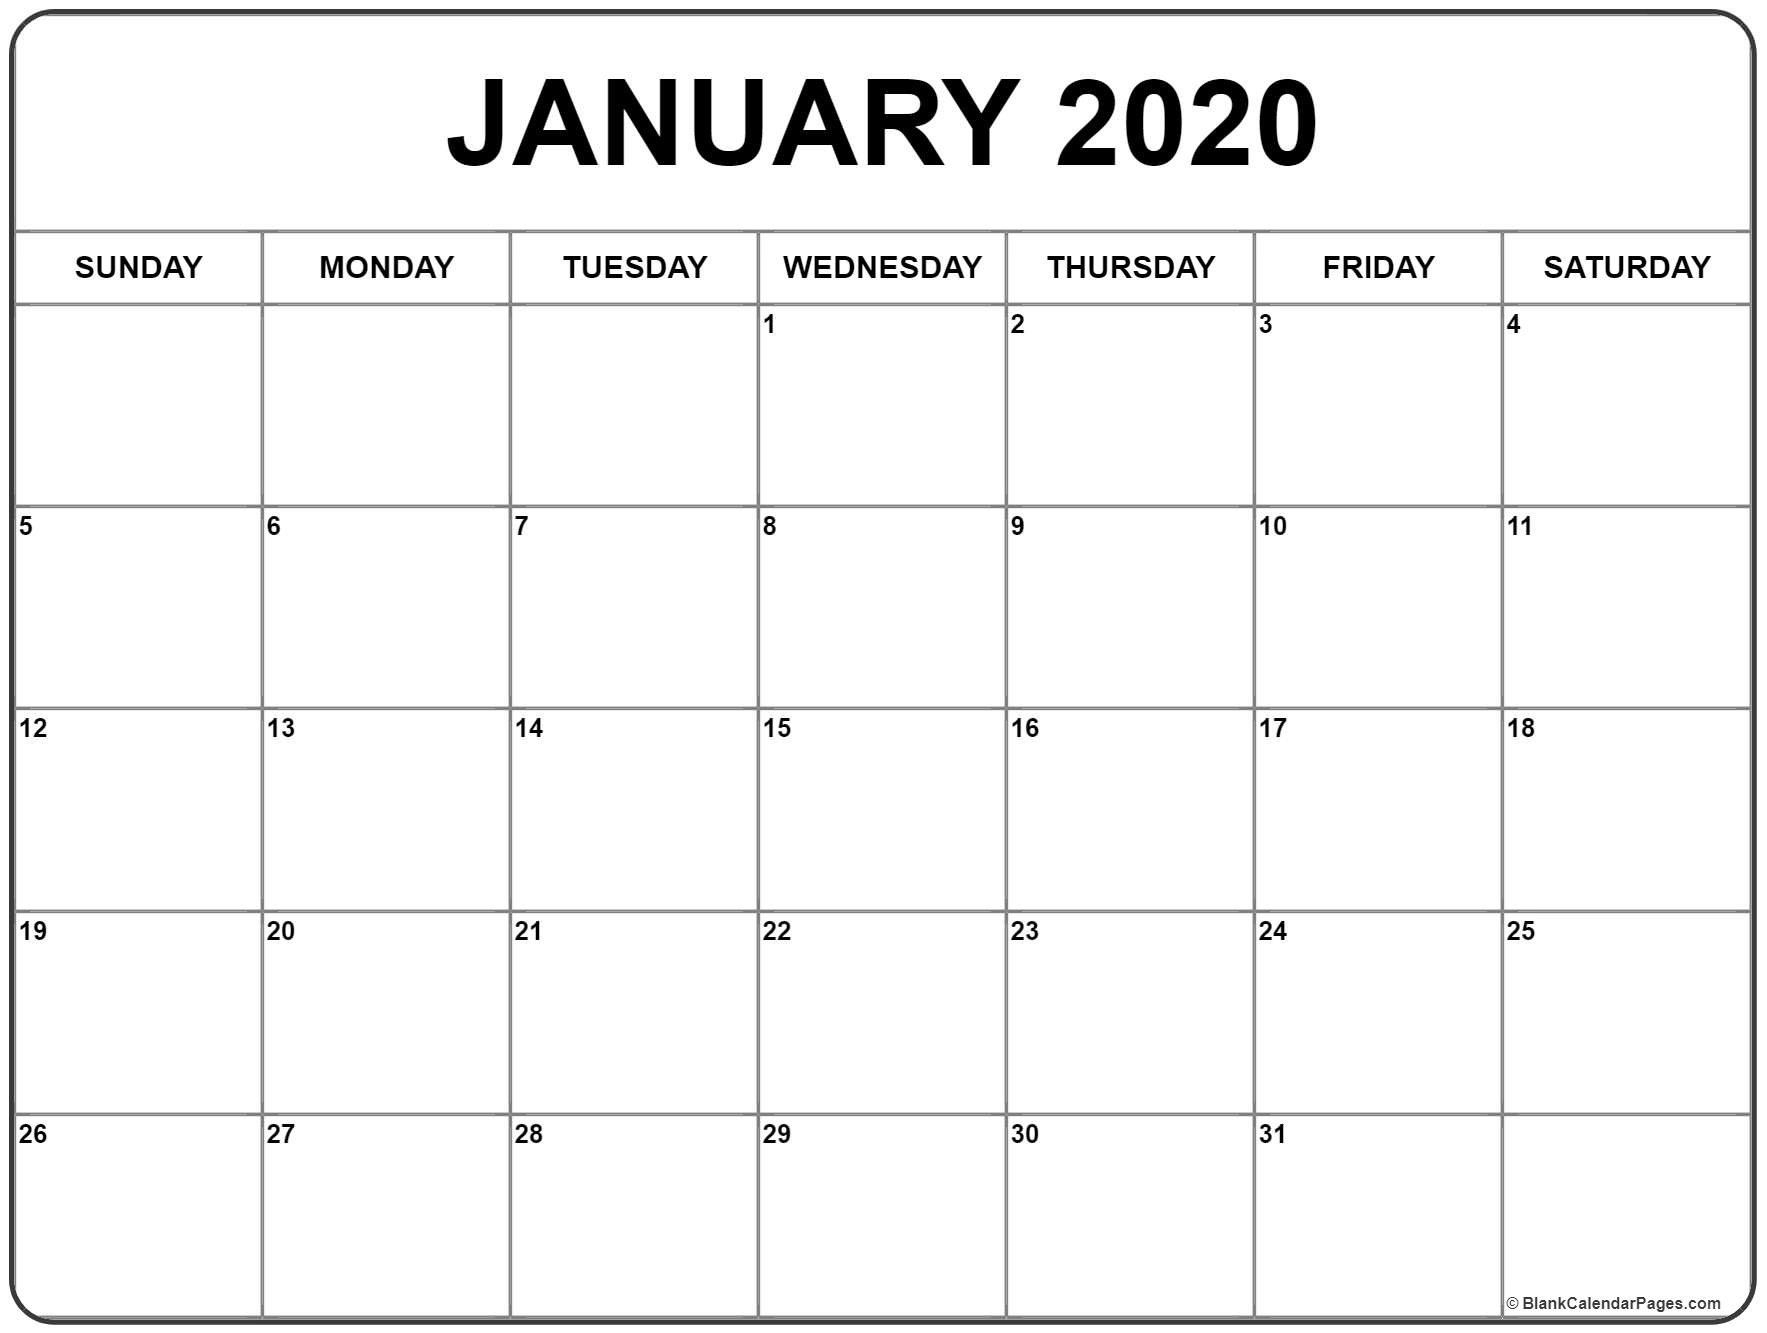 January 2020 Calendar 56 Templates Of 2020 Printable January intended for Blank Fill In Calendar 2020